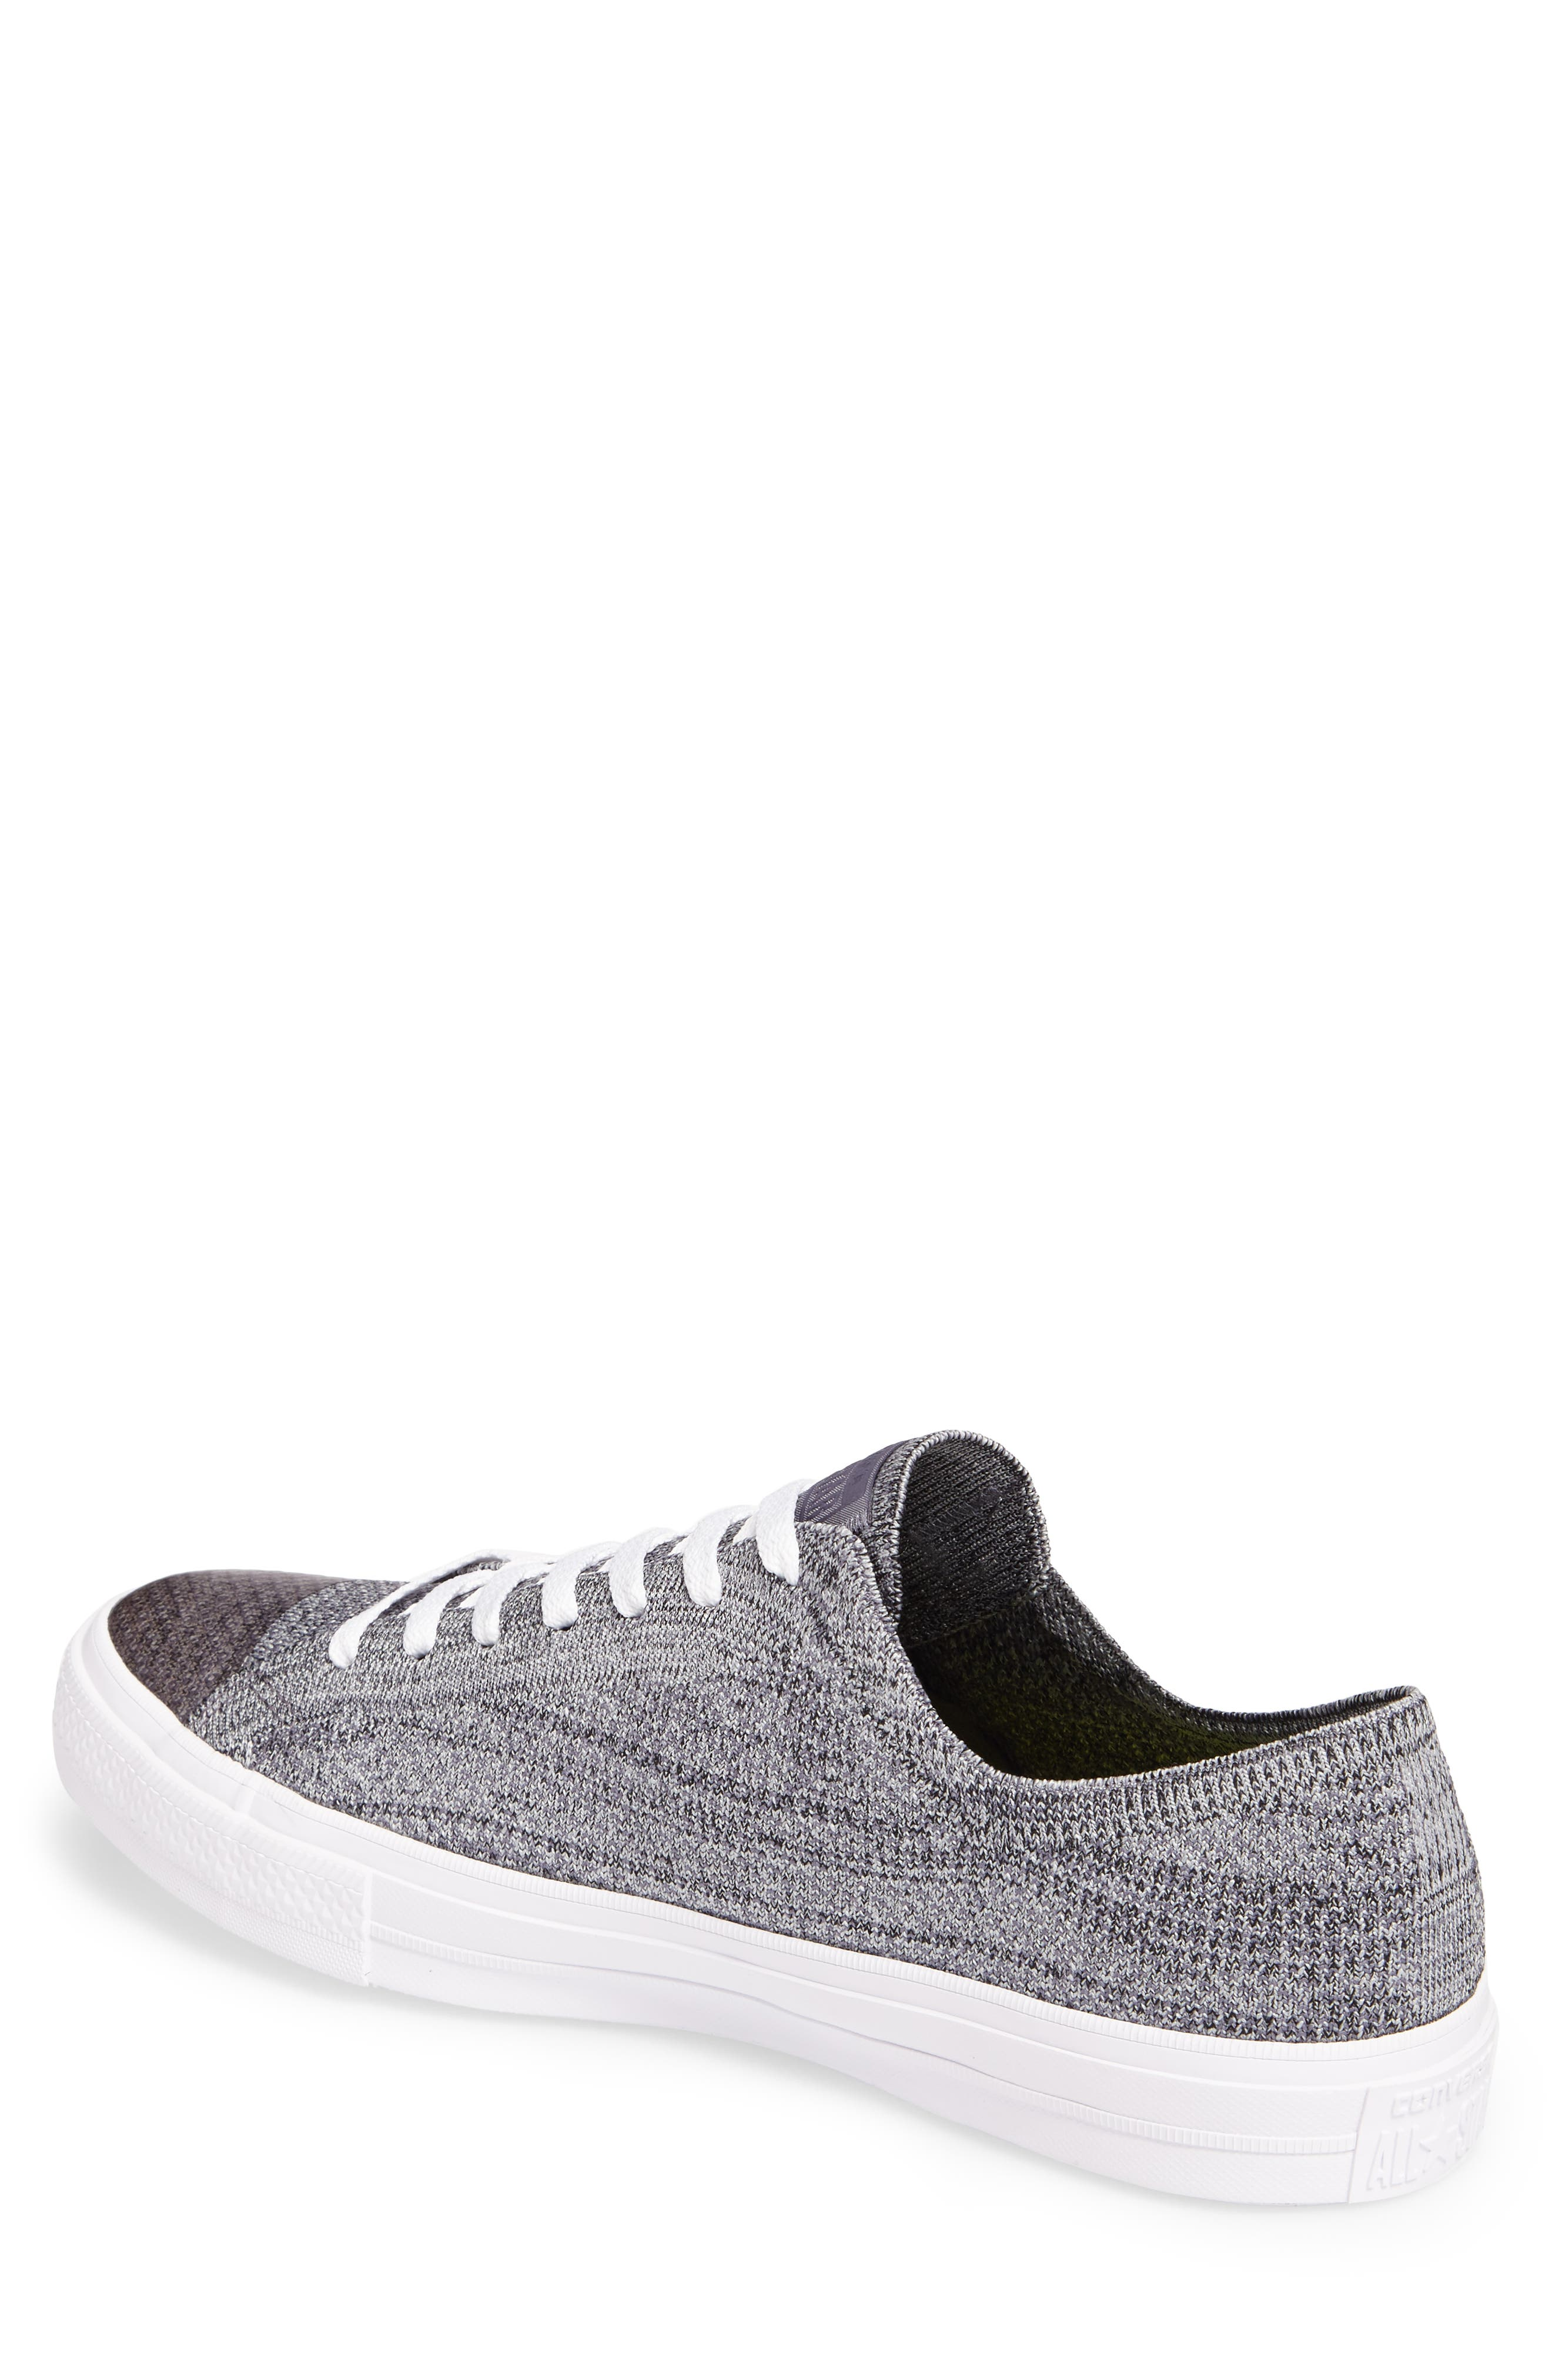 Chuck Taylor<sup>®</sup> All Star<sup>®</sup> Flyknit Sneaker,                             Alternate thumbnail 2, color,                             Carbon